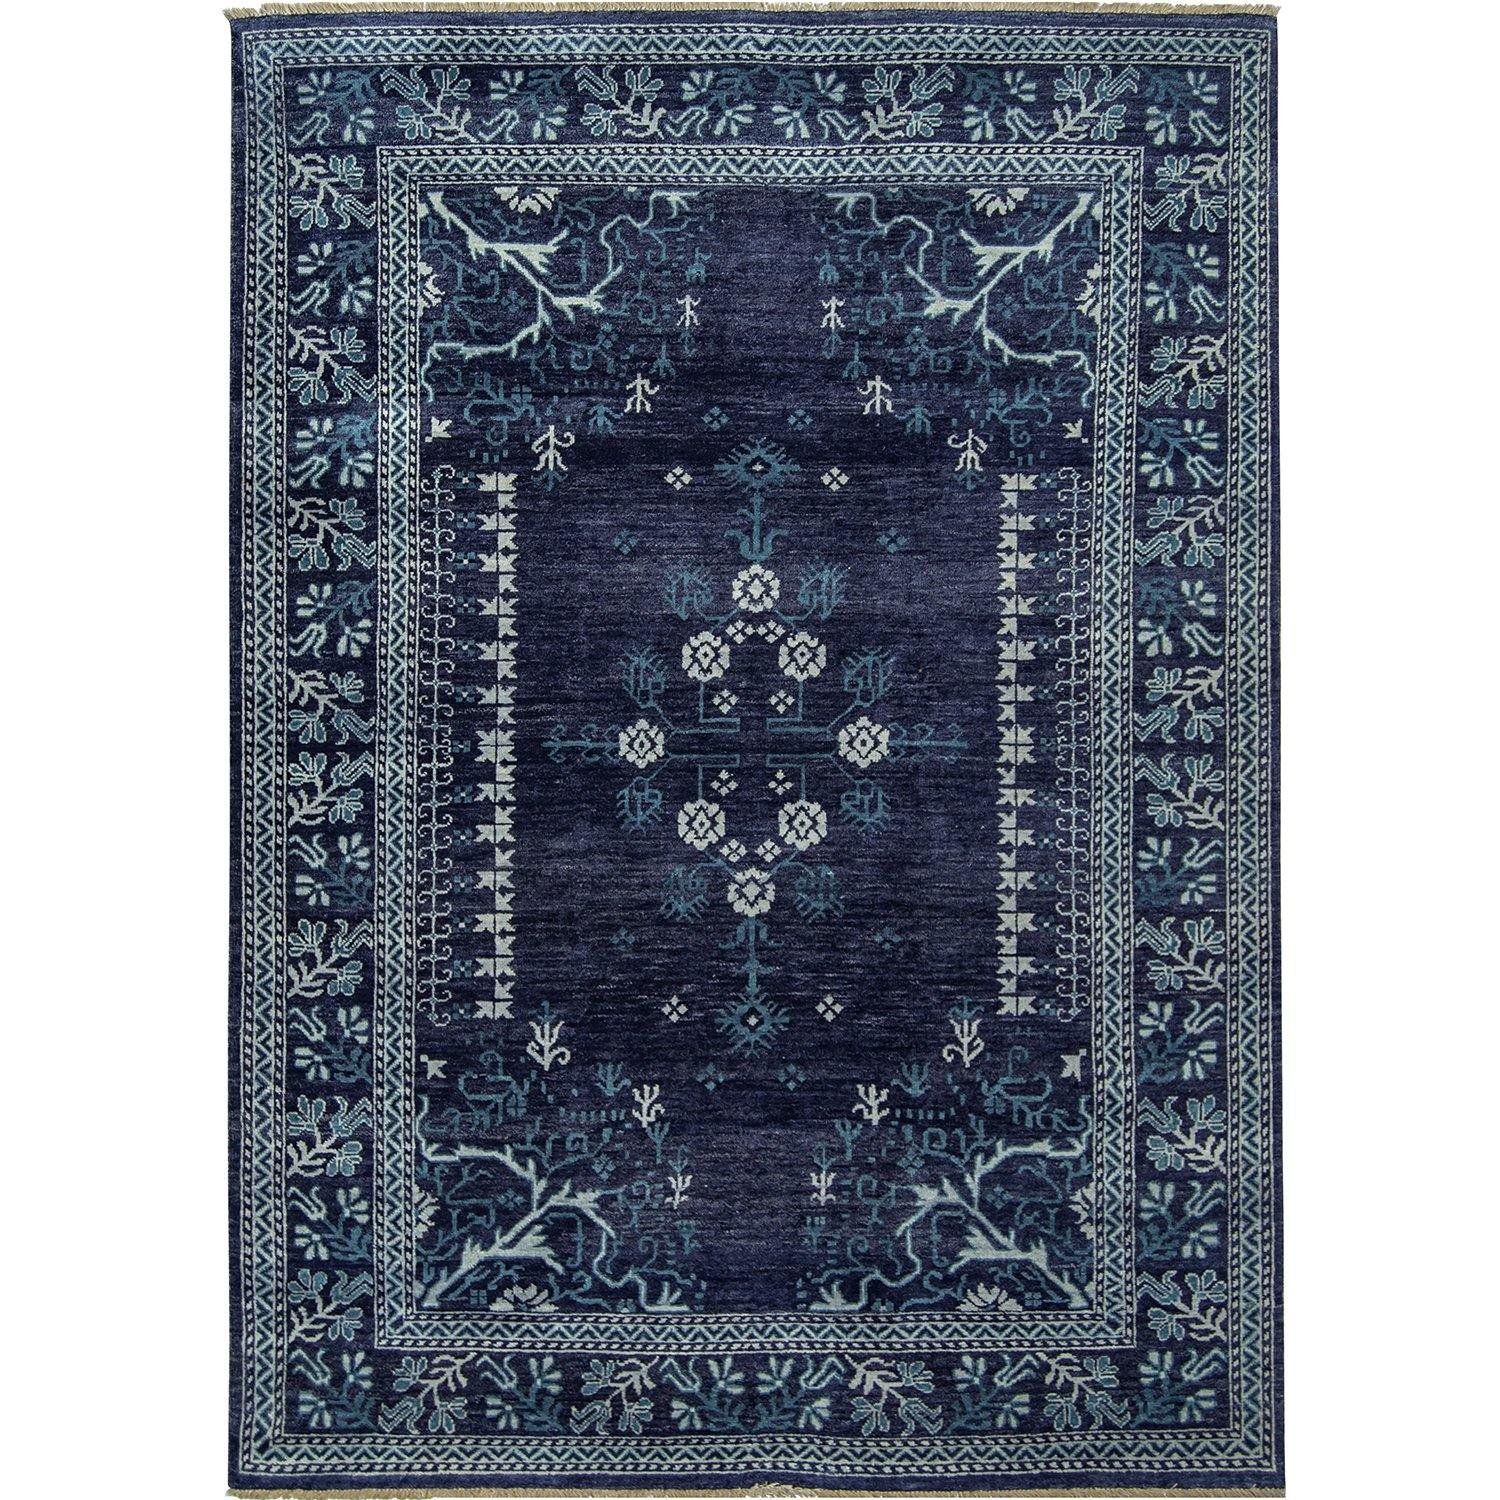 Fine Hand-knotted NZ Wool Rug 169cm x 240cm Persian-Rug | House-of-Haghi | NewMarket | Auckland | NZ | Handmade Persian Rugs | Hand Knotted Persian Rugs